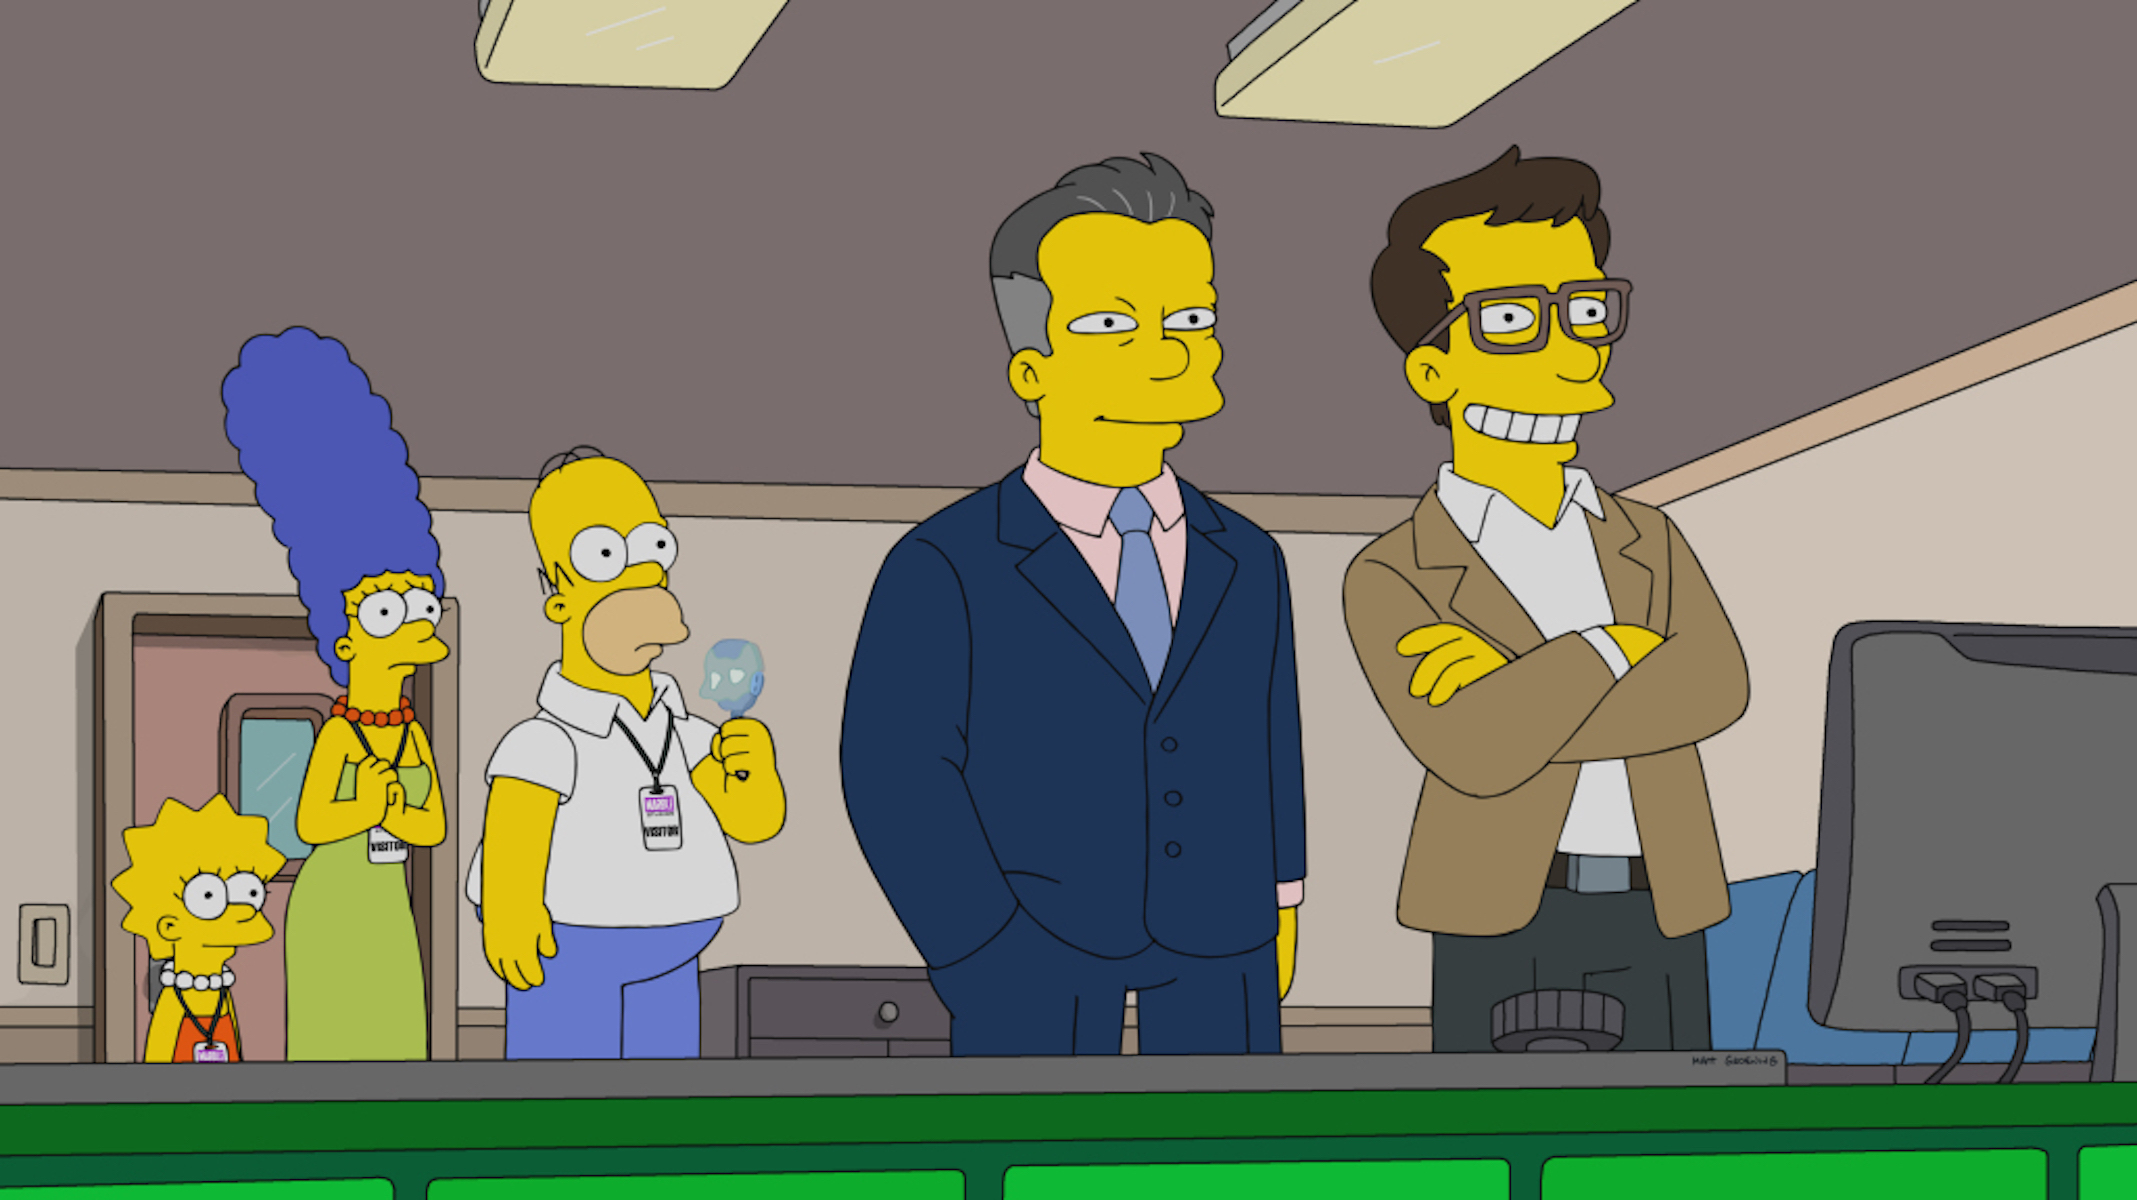 Lisa, Marge, Homer, and two movie executives (Joe and Anthony Russo)